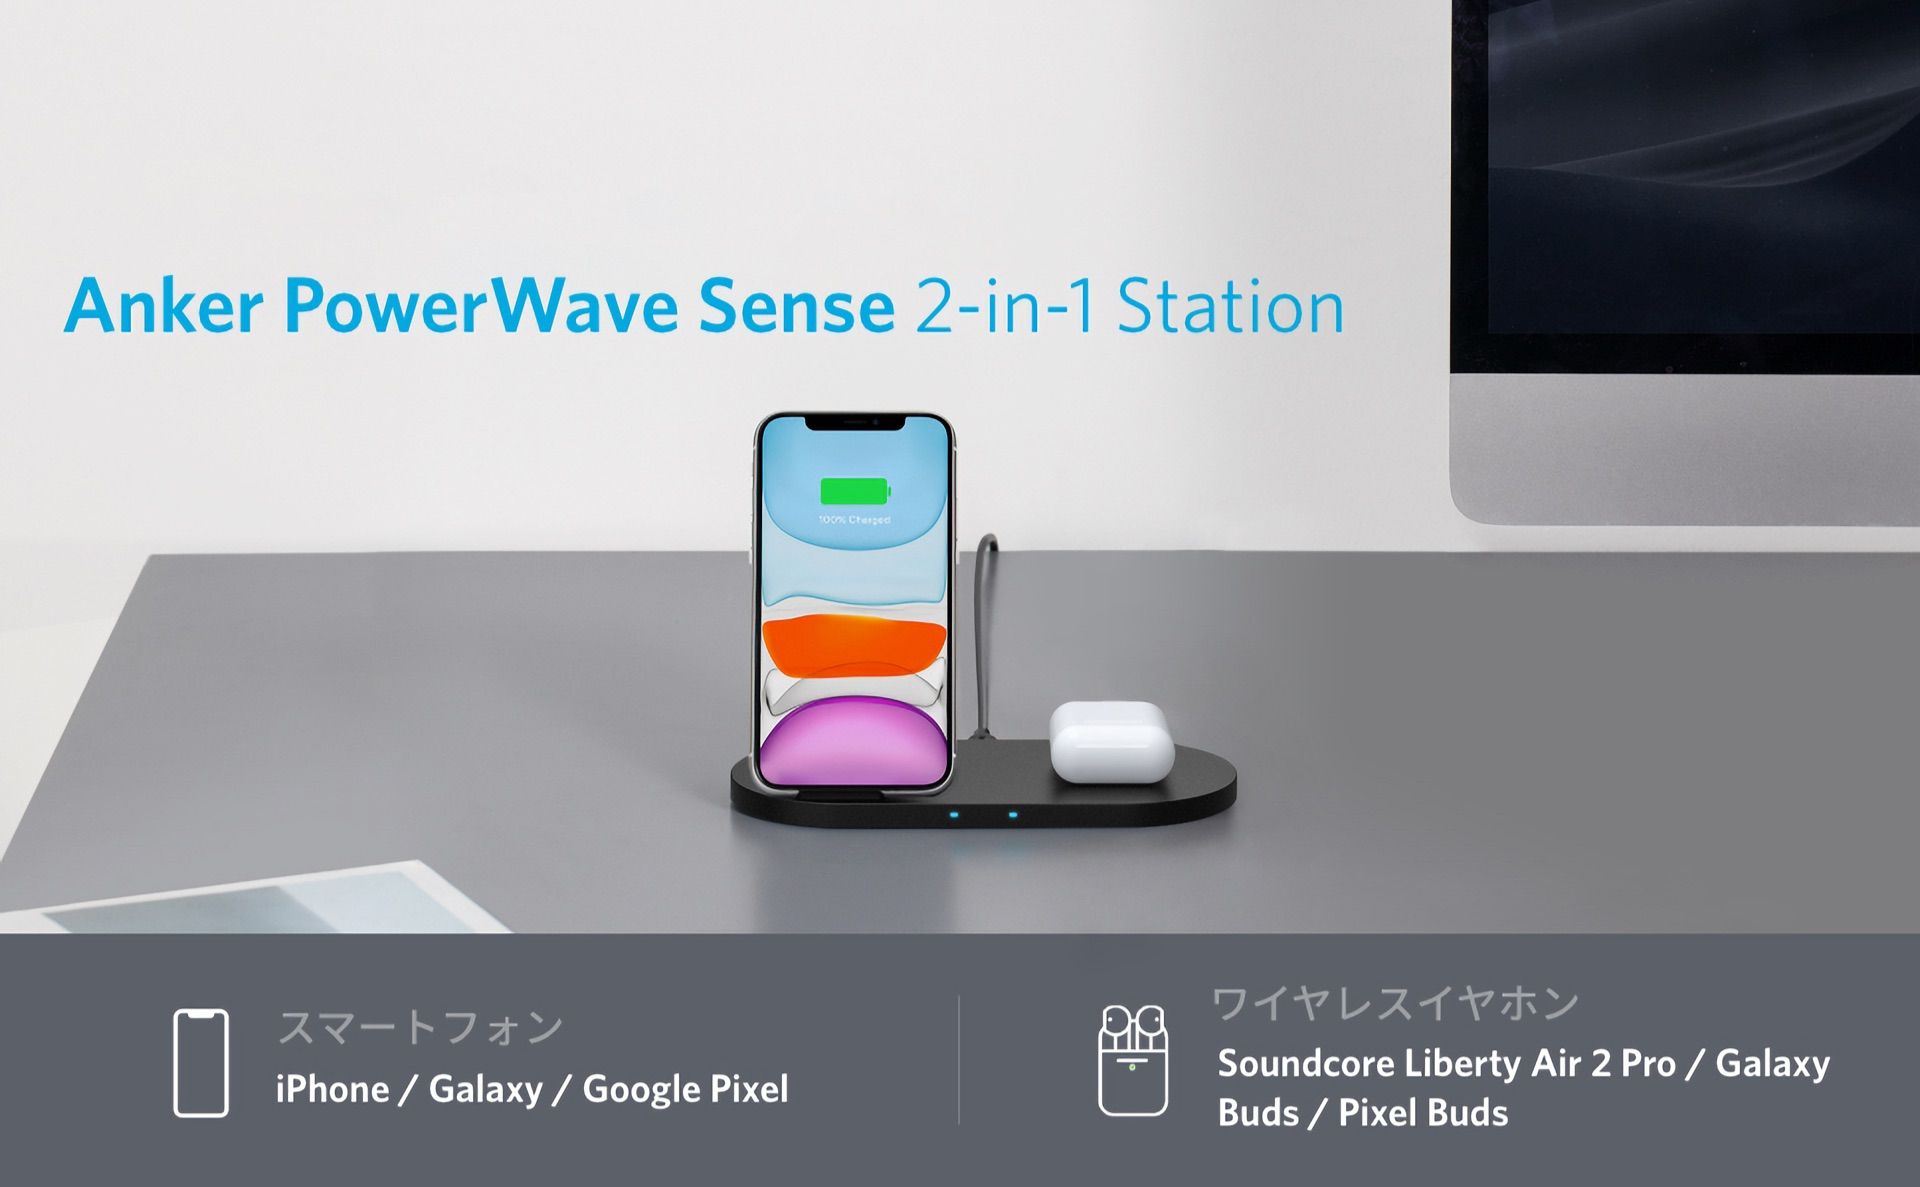 Anker PowerWave Sense 2-in-1 Station with USB-C Cable